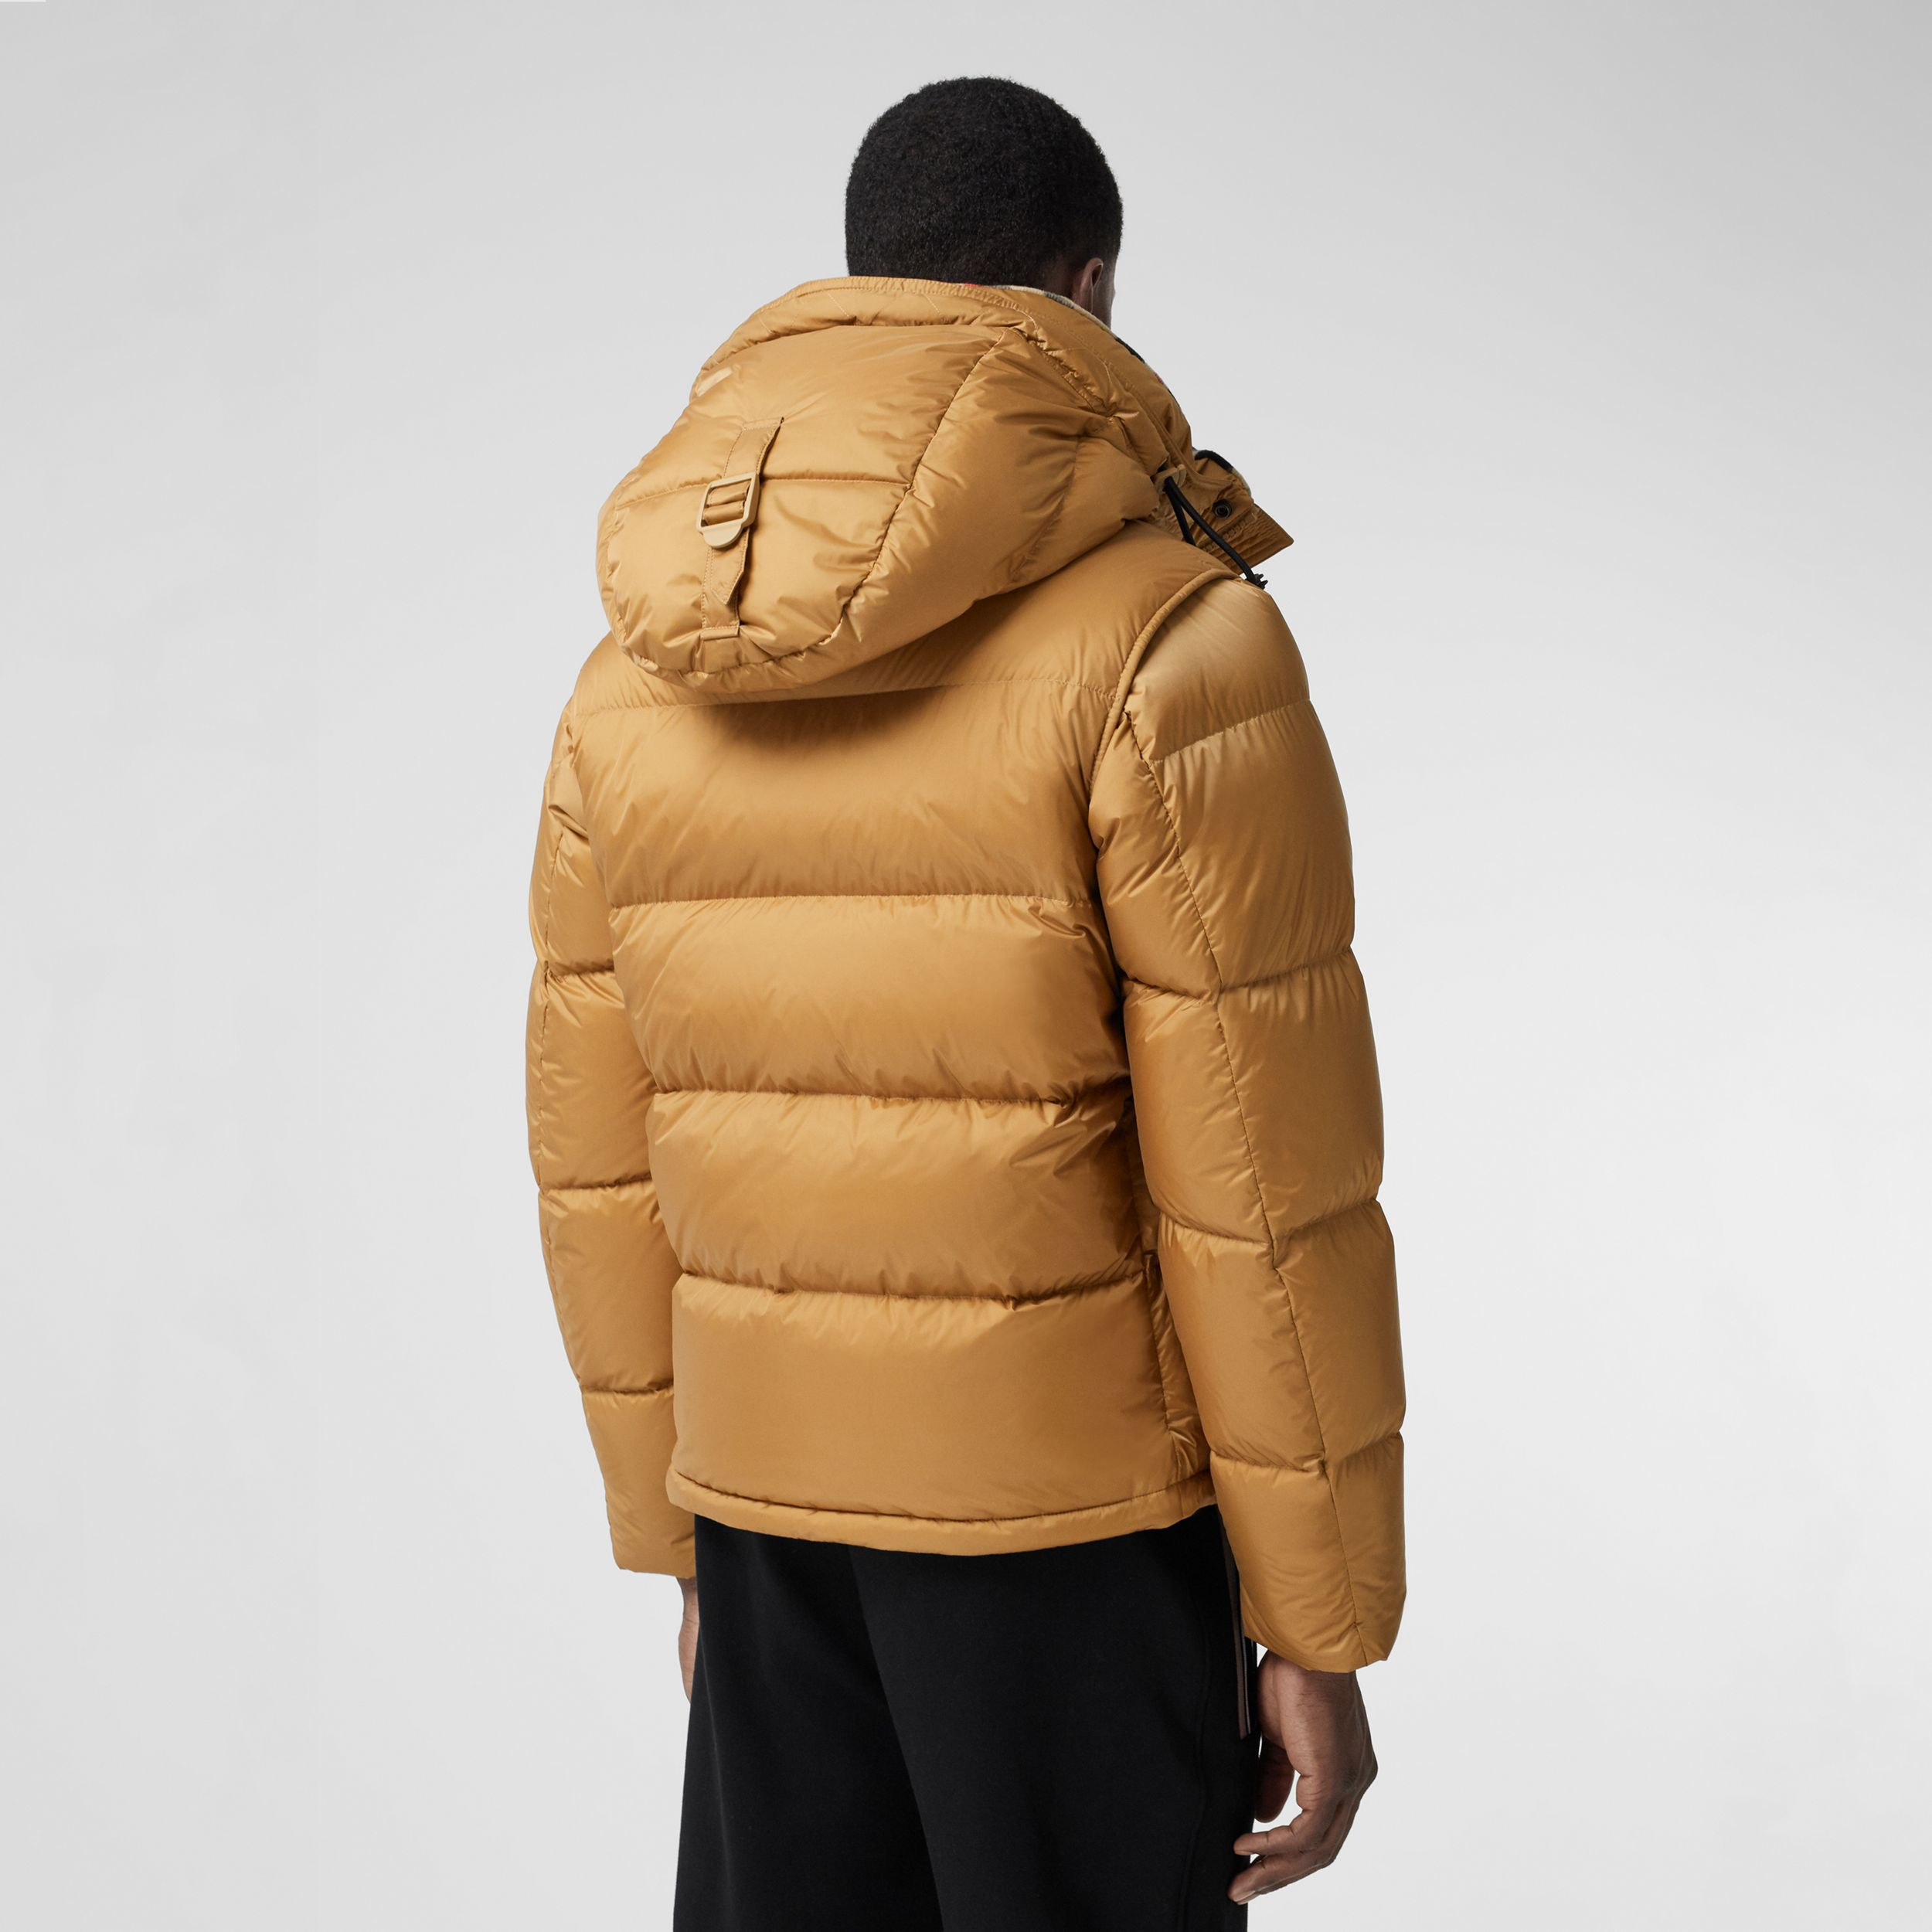 Detachable Sleeve Hooded Puffer Jacket in Warm Honey - Men | Burberry - 3